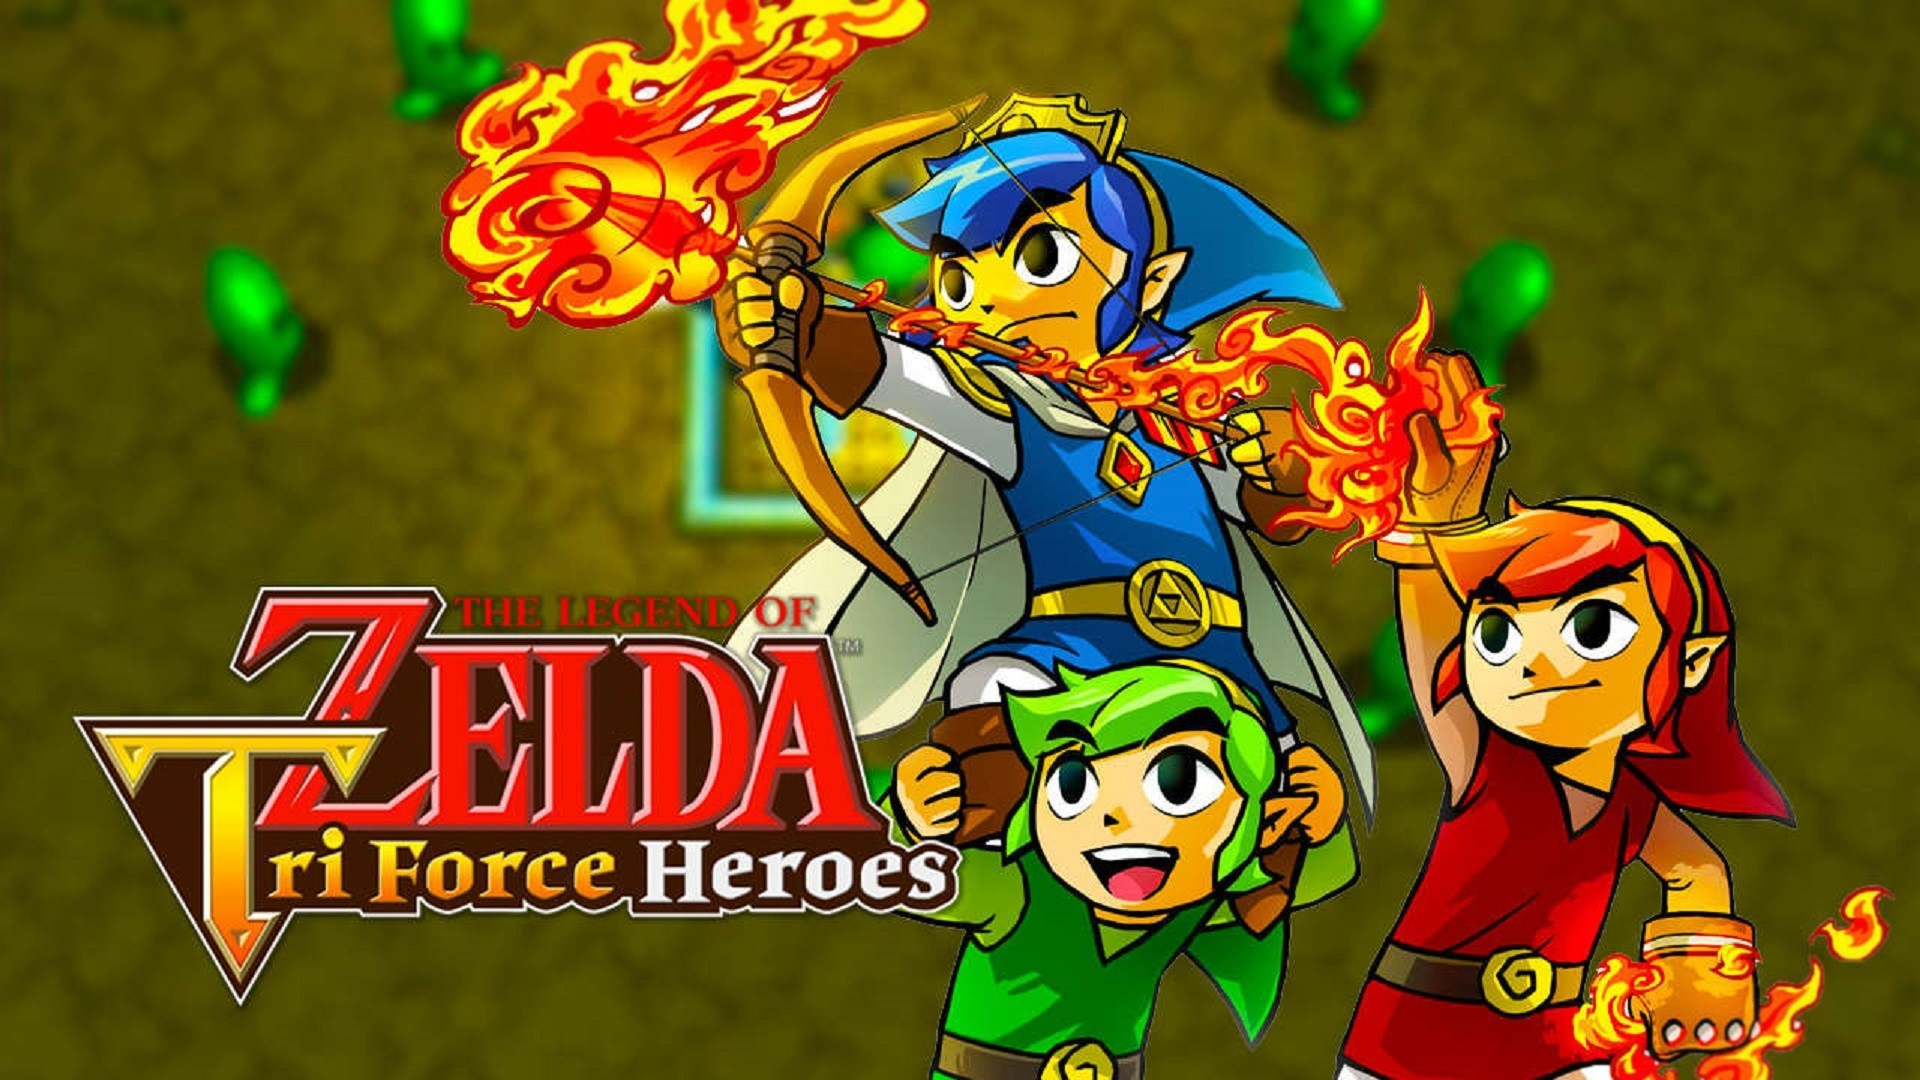 Res: 1920x1080, Tri Force Heroes Wallpaper